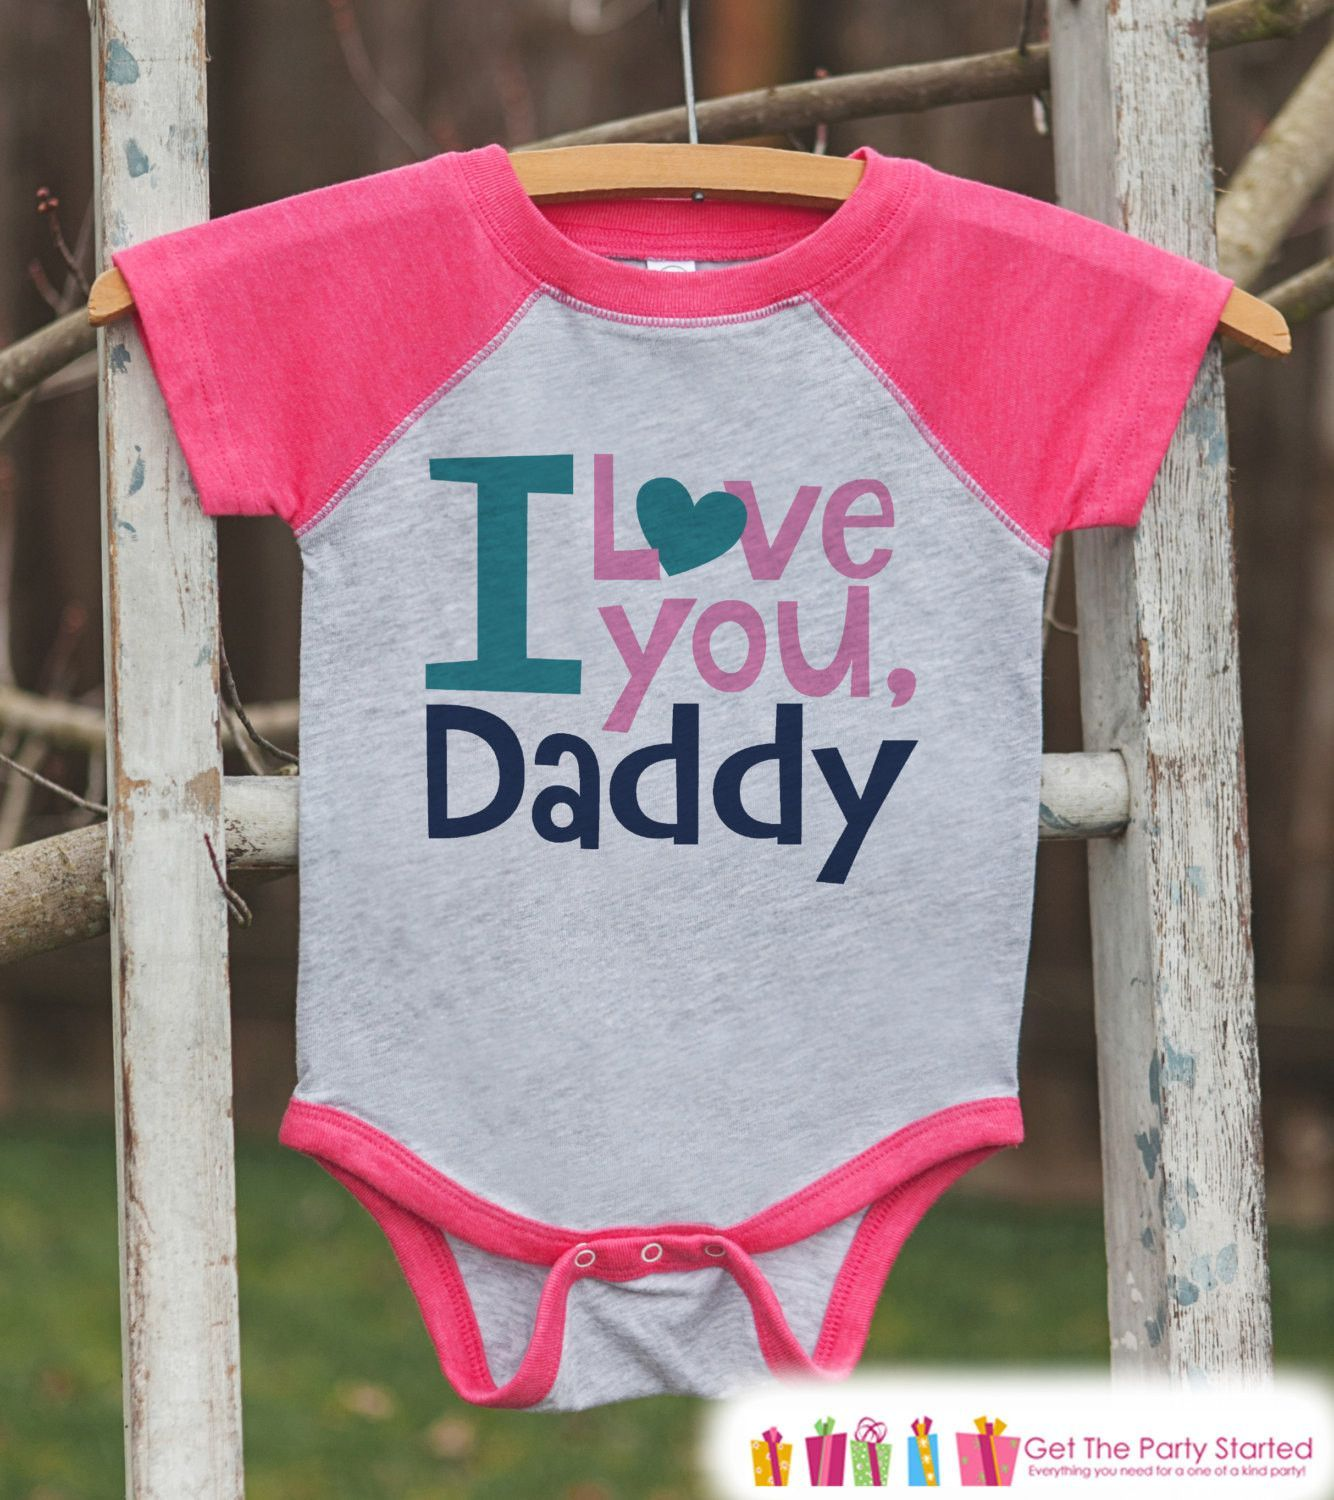 42b312367f148 Girls Father's Day Outfit - Pink Raglan Shirt - I Love You Daddy - Happy  Fathers